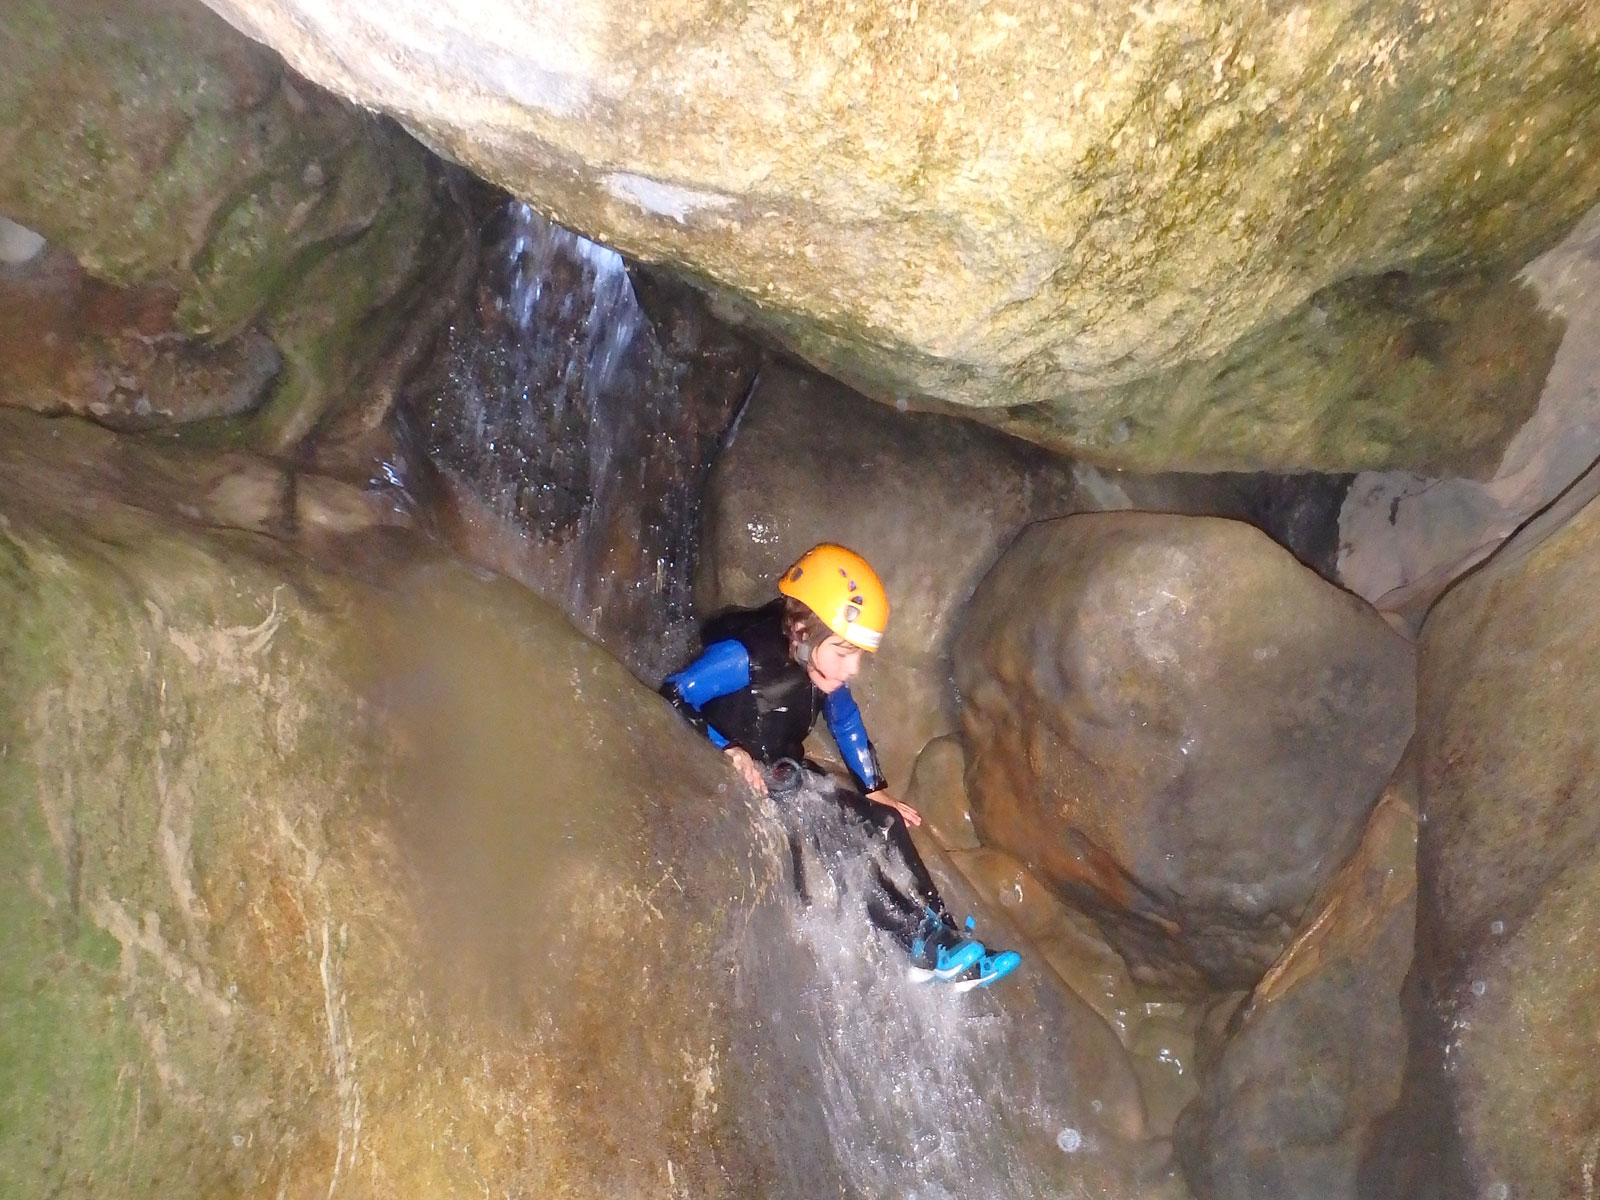 Echoroc - Canyoning, Escalade, Via ferrata